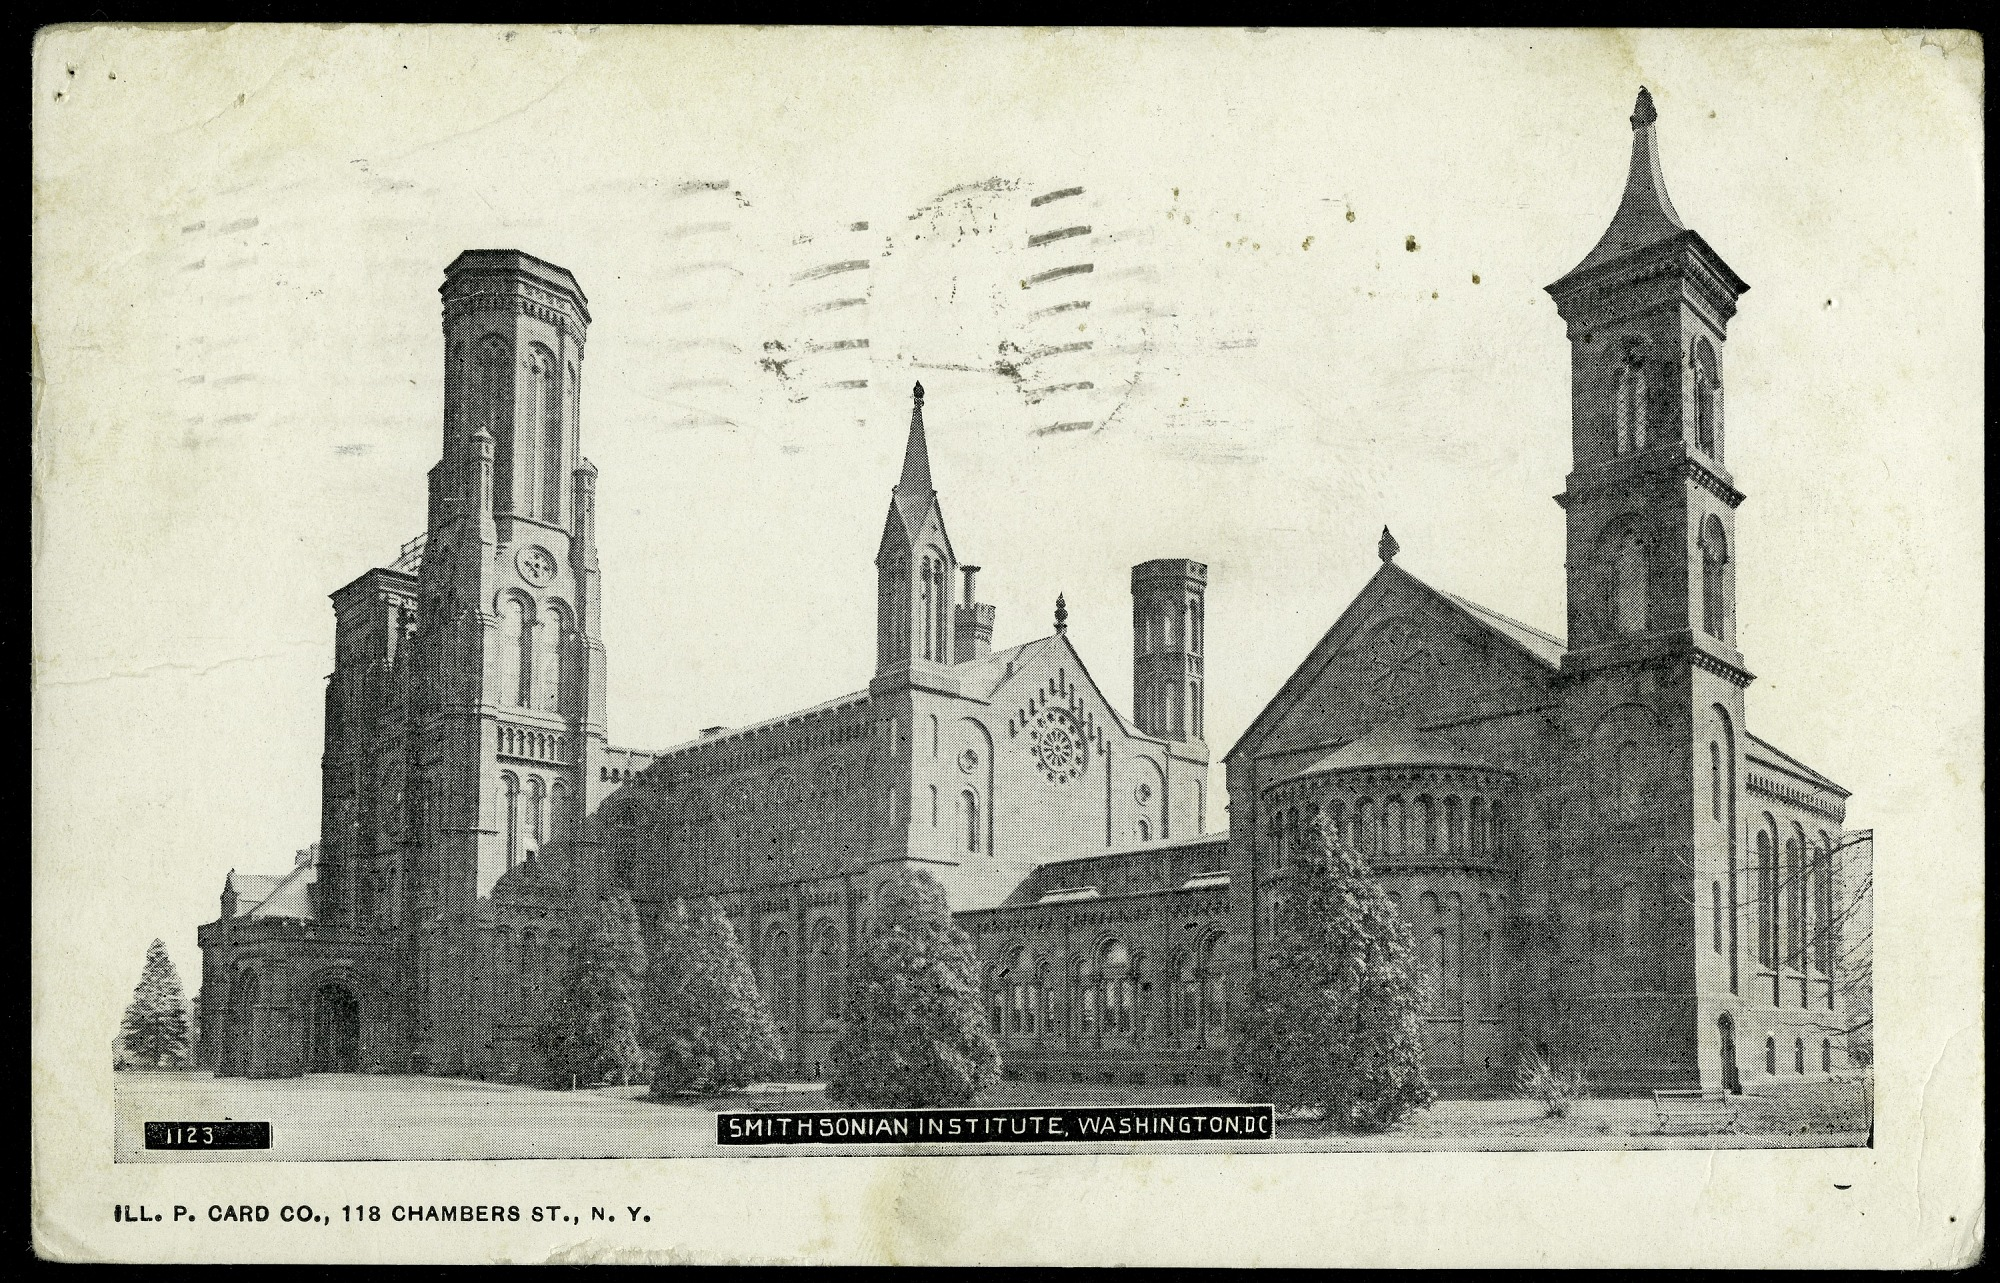 Grayscale Postcard of the Smithsonian Institution Castle, February 13, 1905, Smithsonian Archives - History Div, SIA2013-06633 (front) and SIA2013-06634 (back).